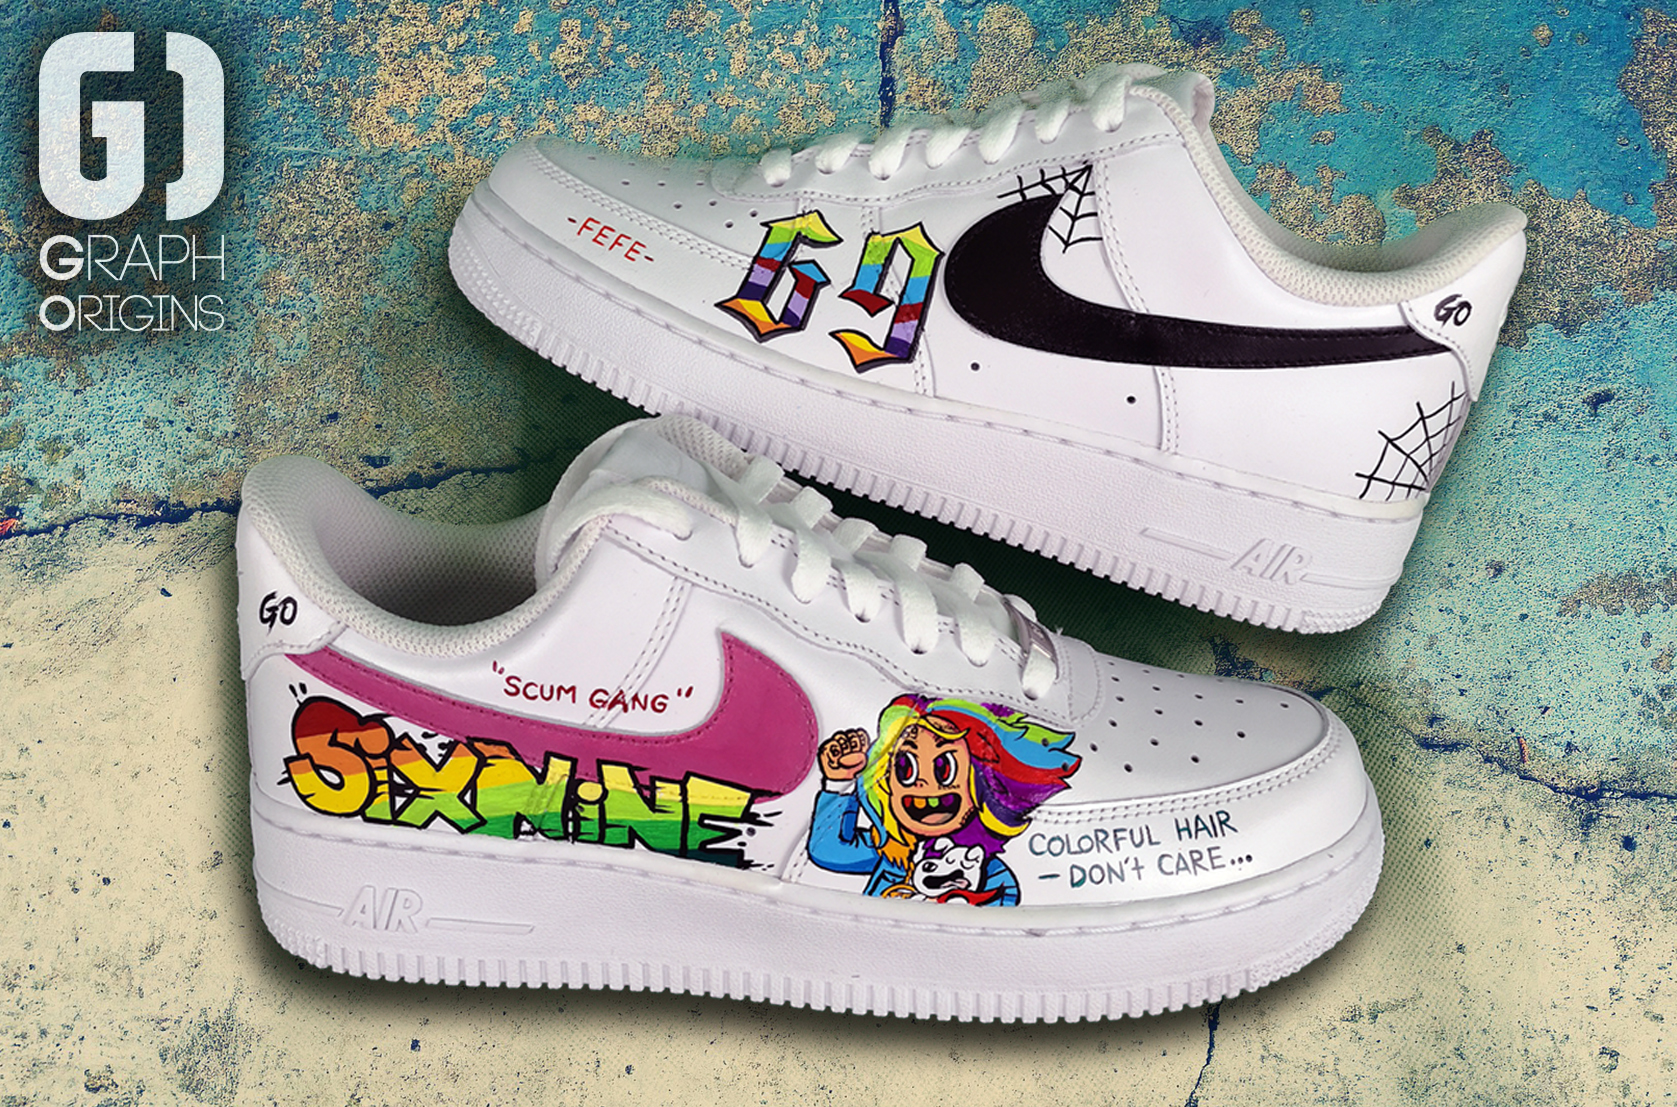 Custom 6ix9ine Air Force 1